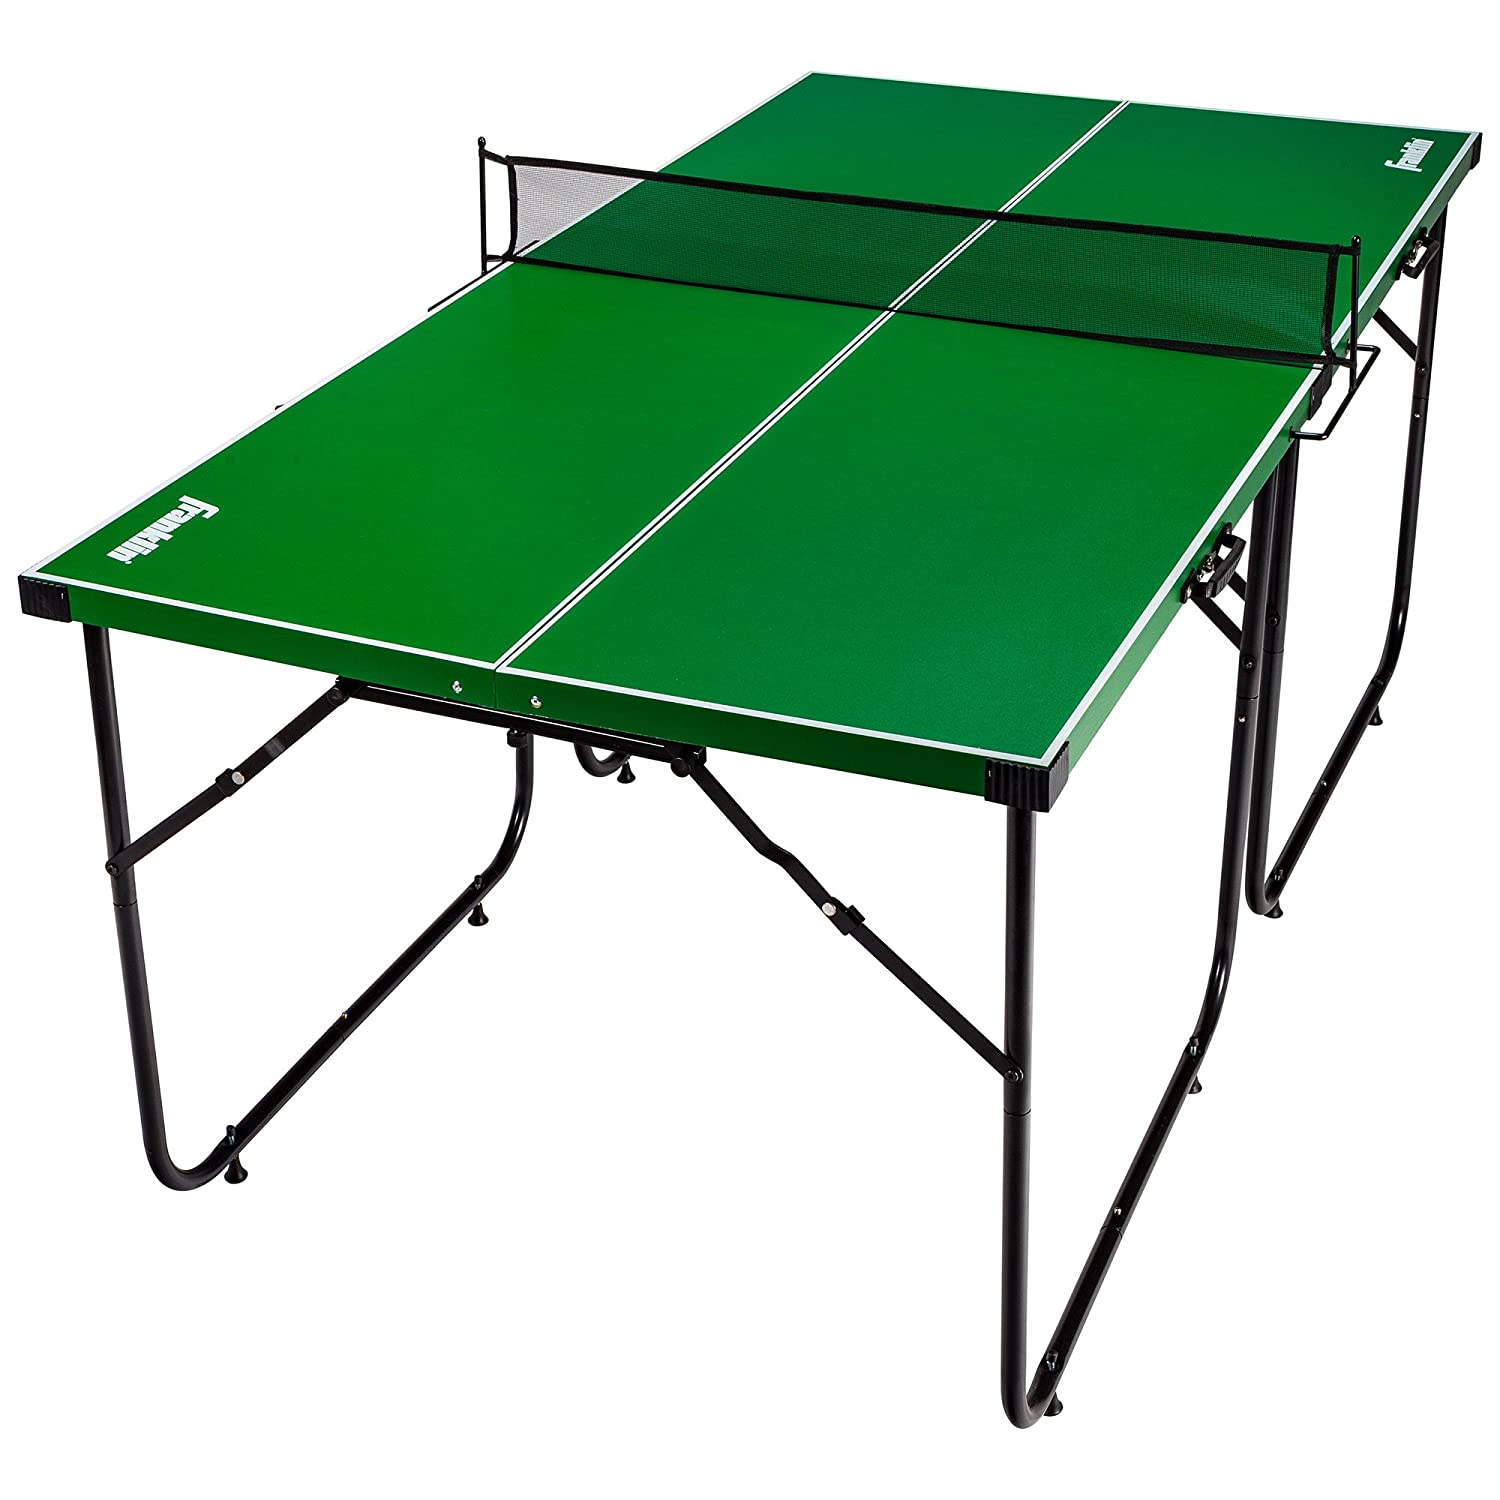 Amazon.com : Franklin Sports Mid Size Table Tennis Table   Ideal For  Smaller Spaces   Space Saving Design : Sports U0026 Outdoors